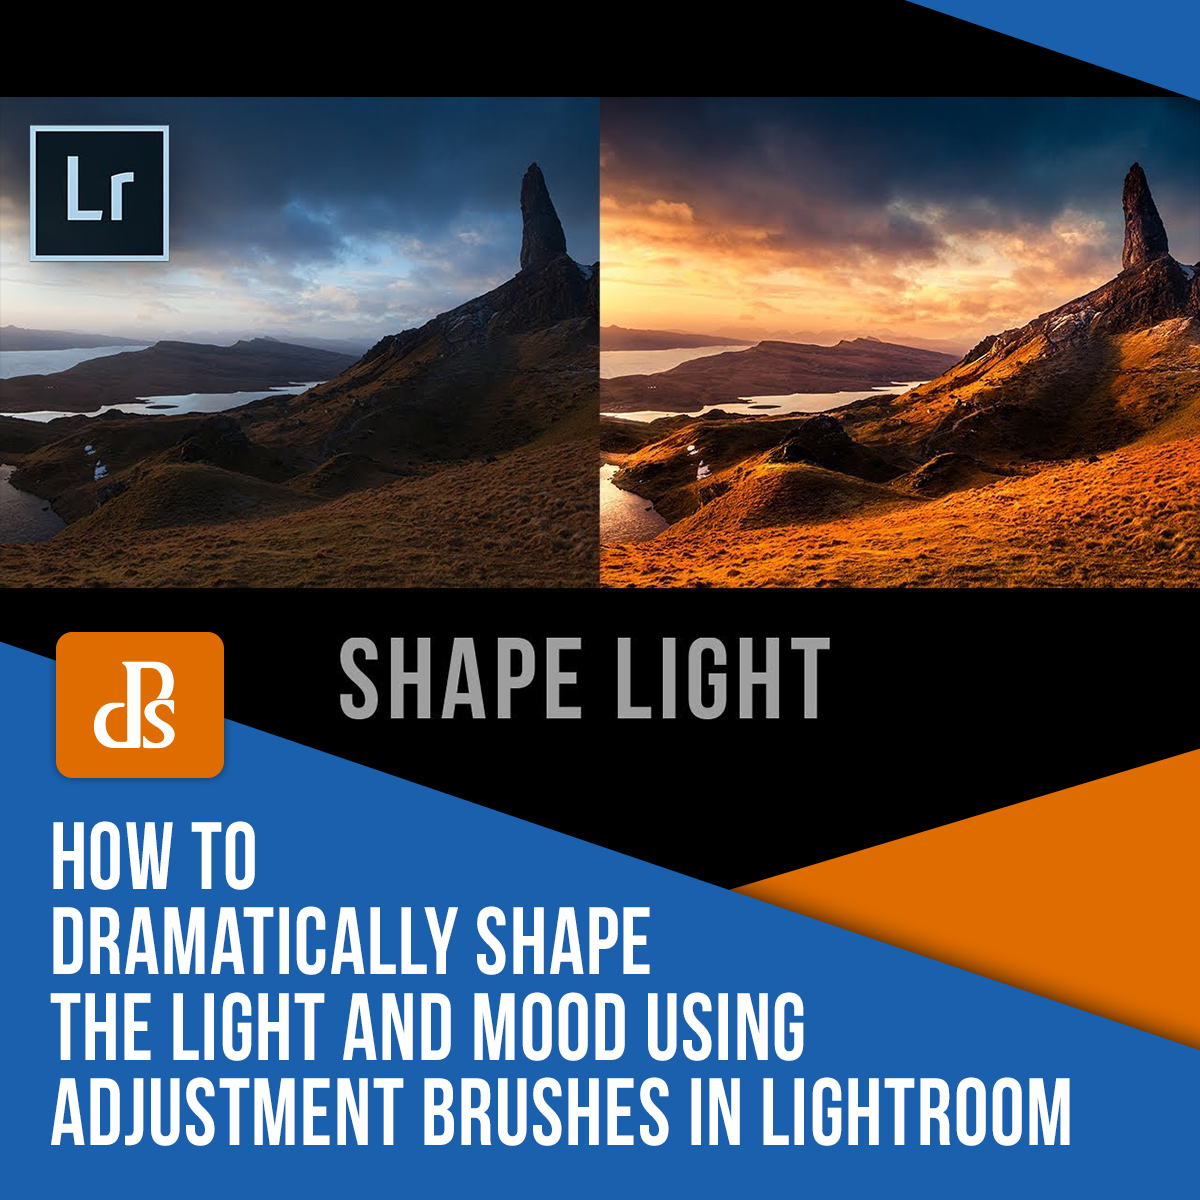 How to Dramatically Shape the Light and Mood Using Adjustment Brushes in Lightroom (video) Featured image